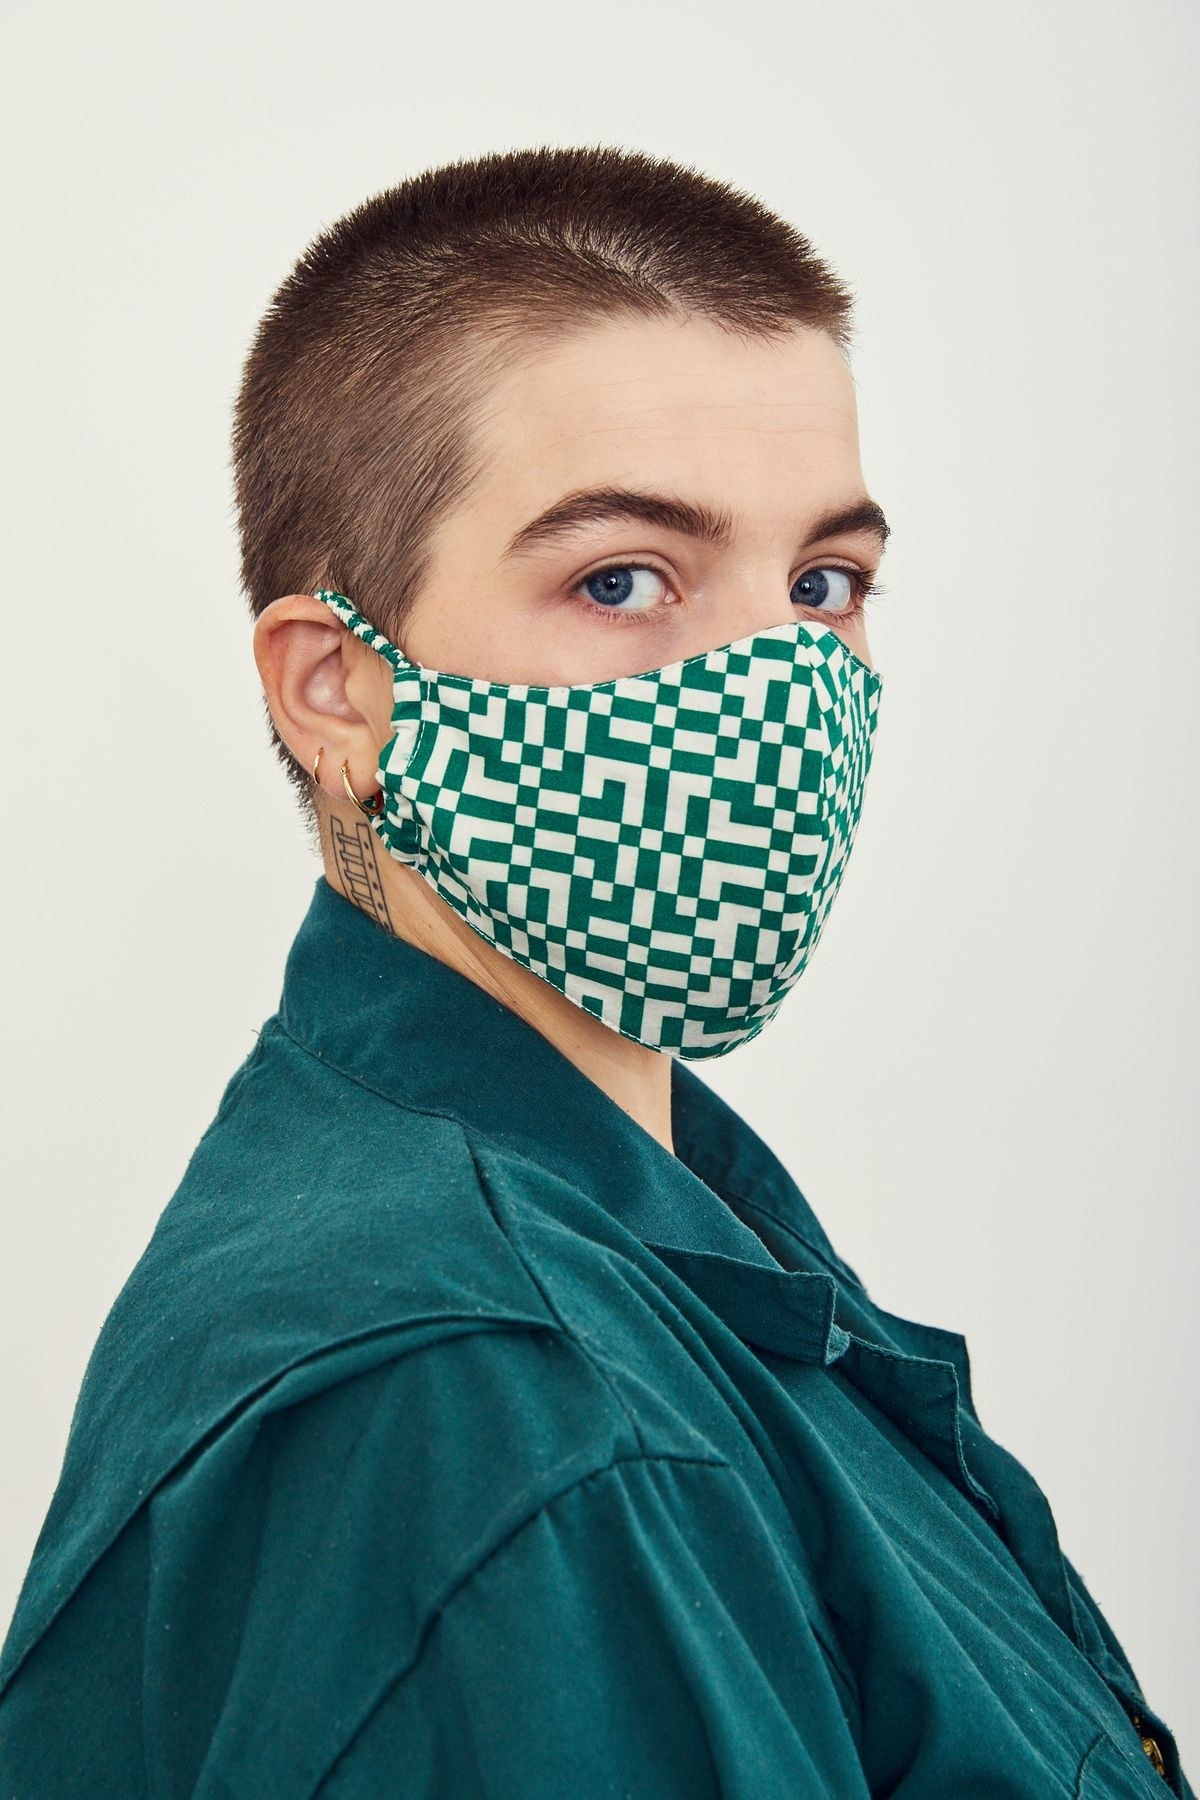 Model wearing a graphic face mask